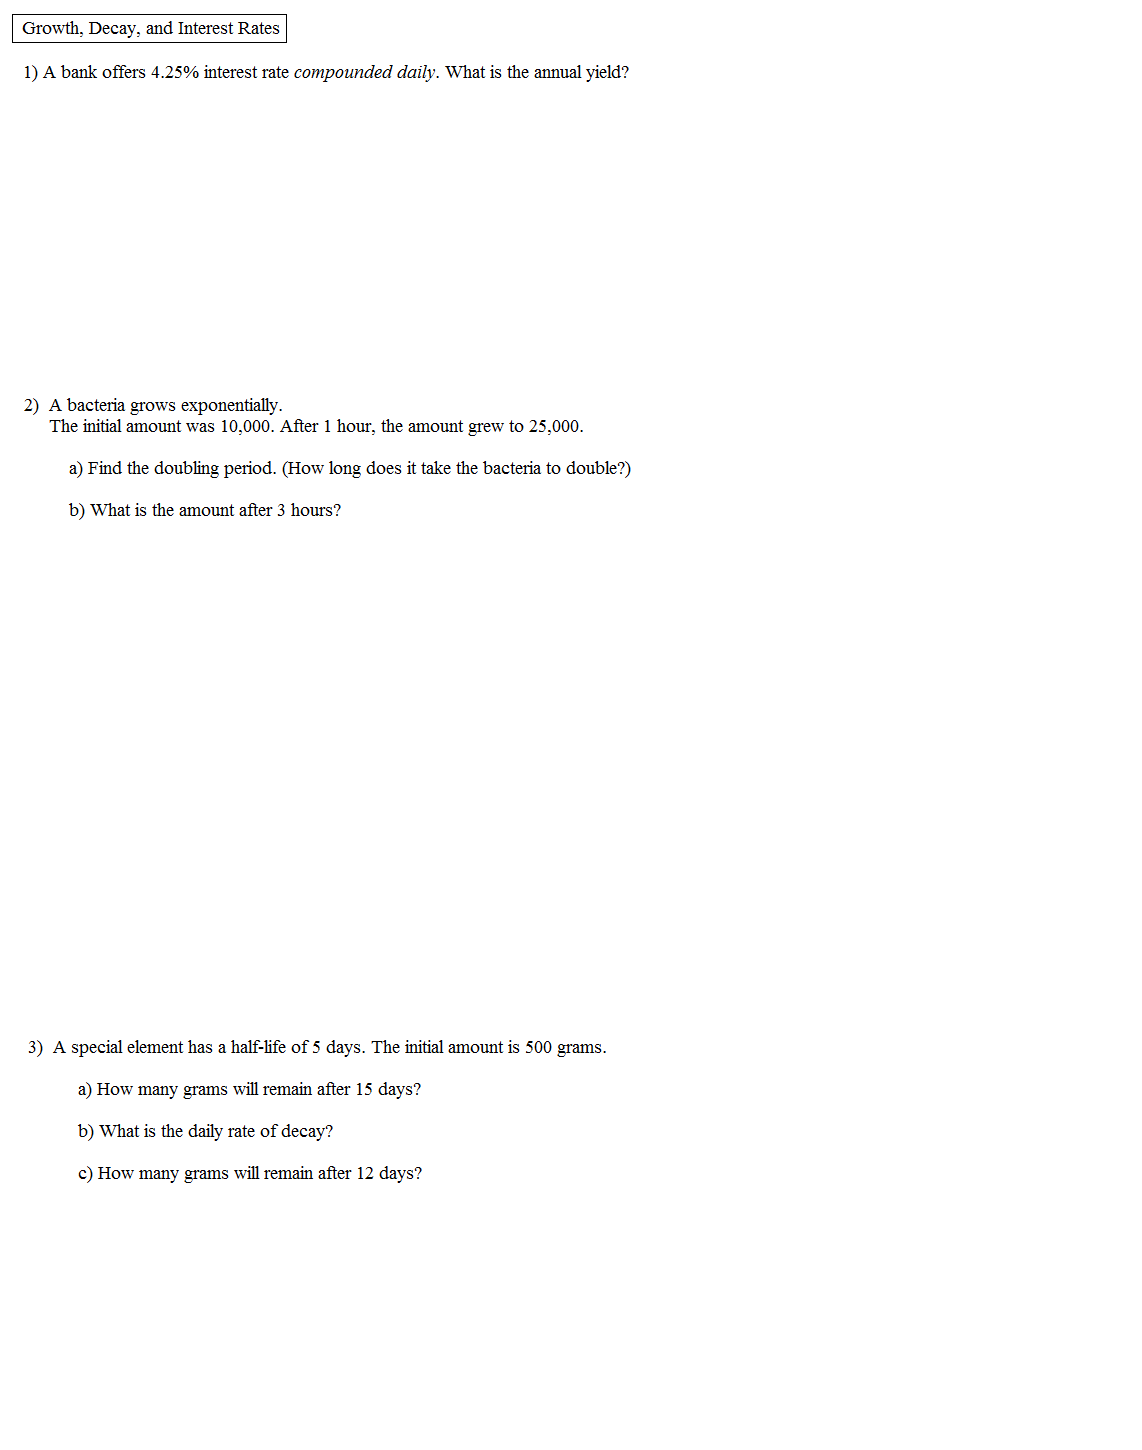 Free Worksheet Half Life Problems Worksheet math plane growth decay interest half life rate quiz 1